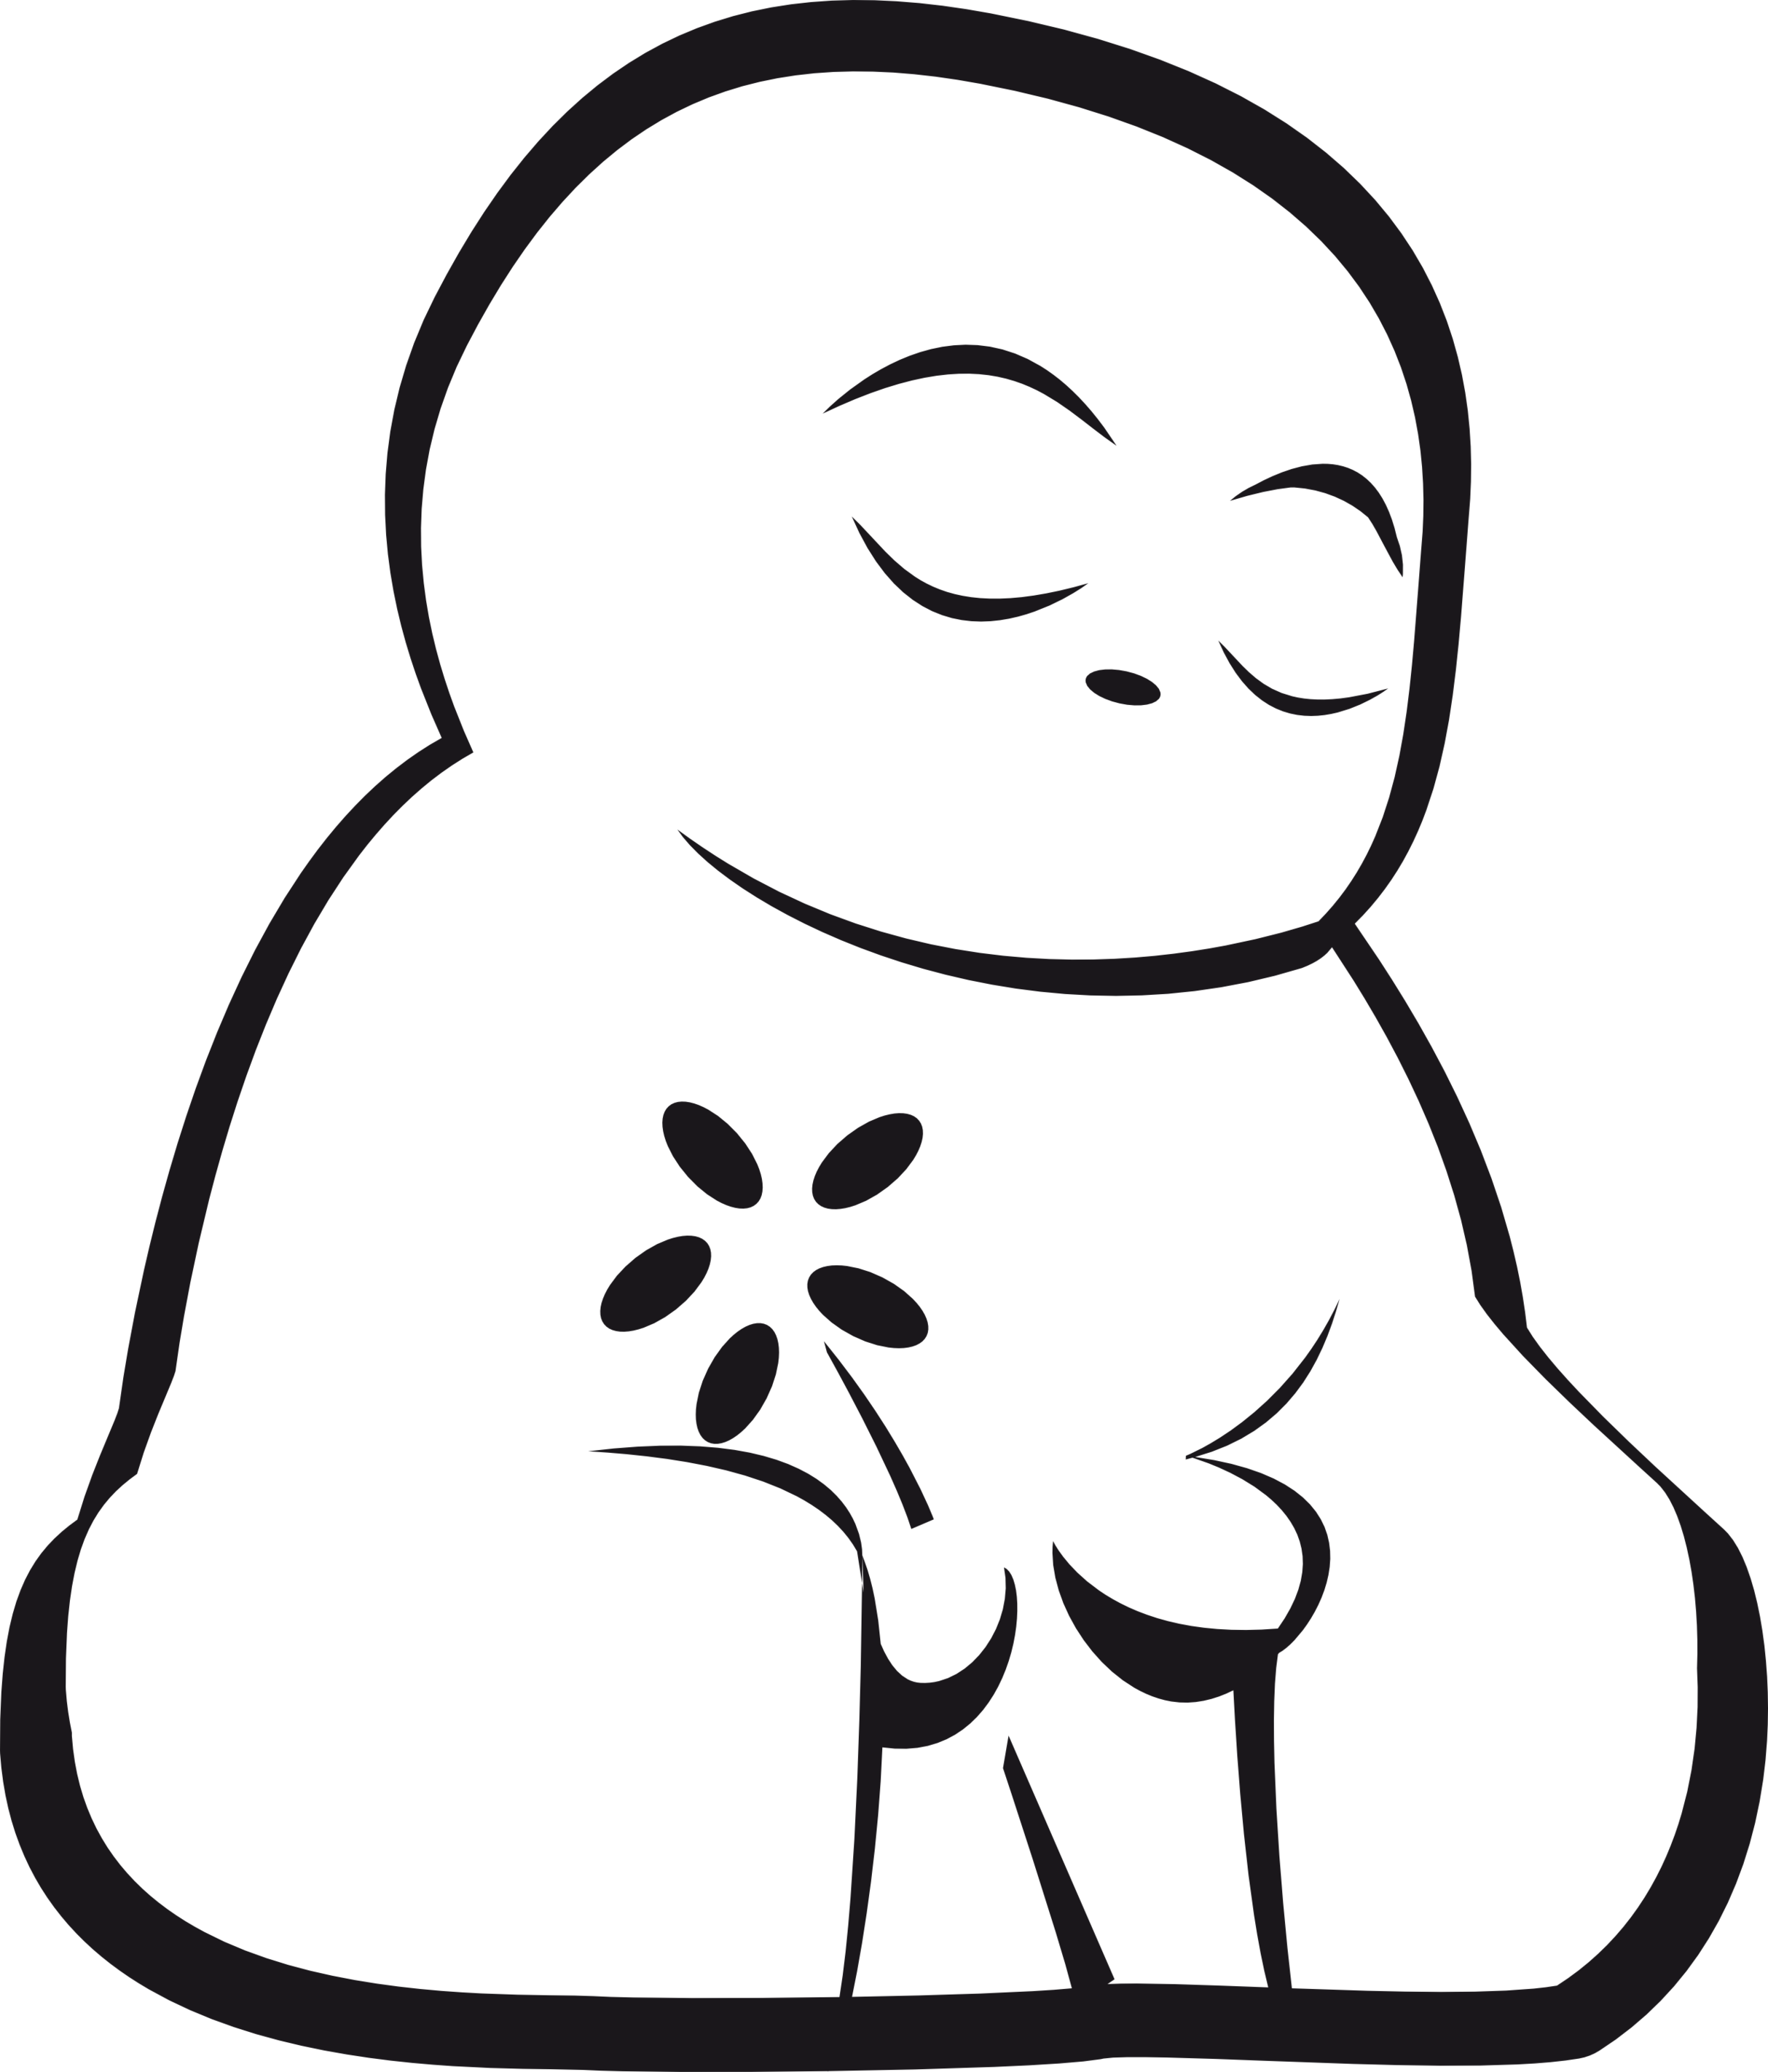 Free buddhism cliparts download. Buddha clipart cute clip freeuse